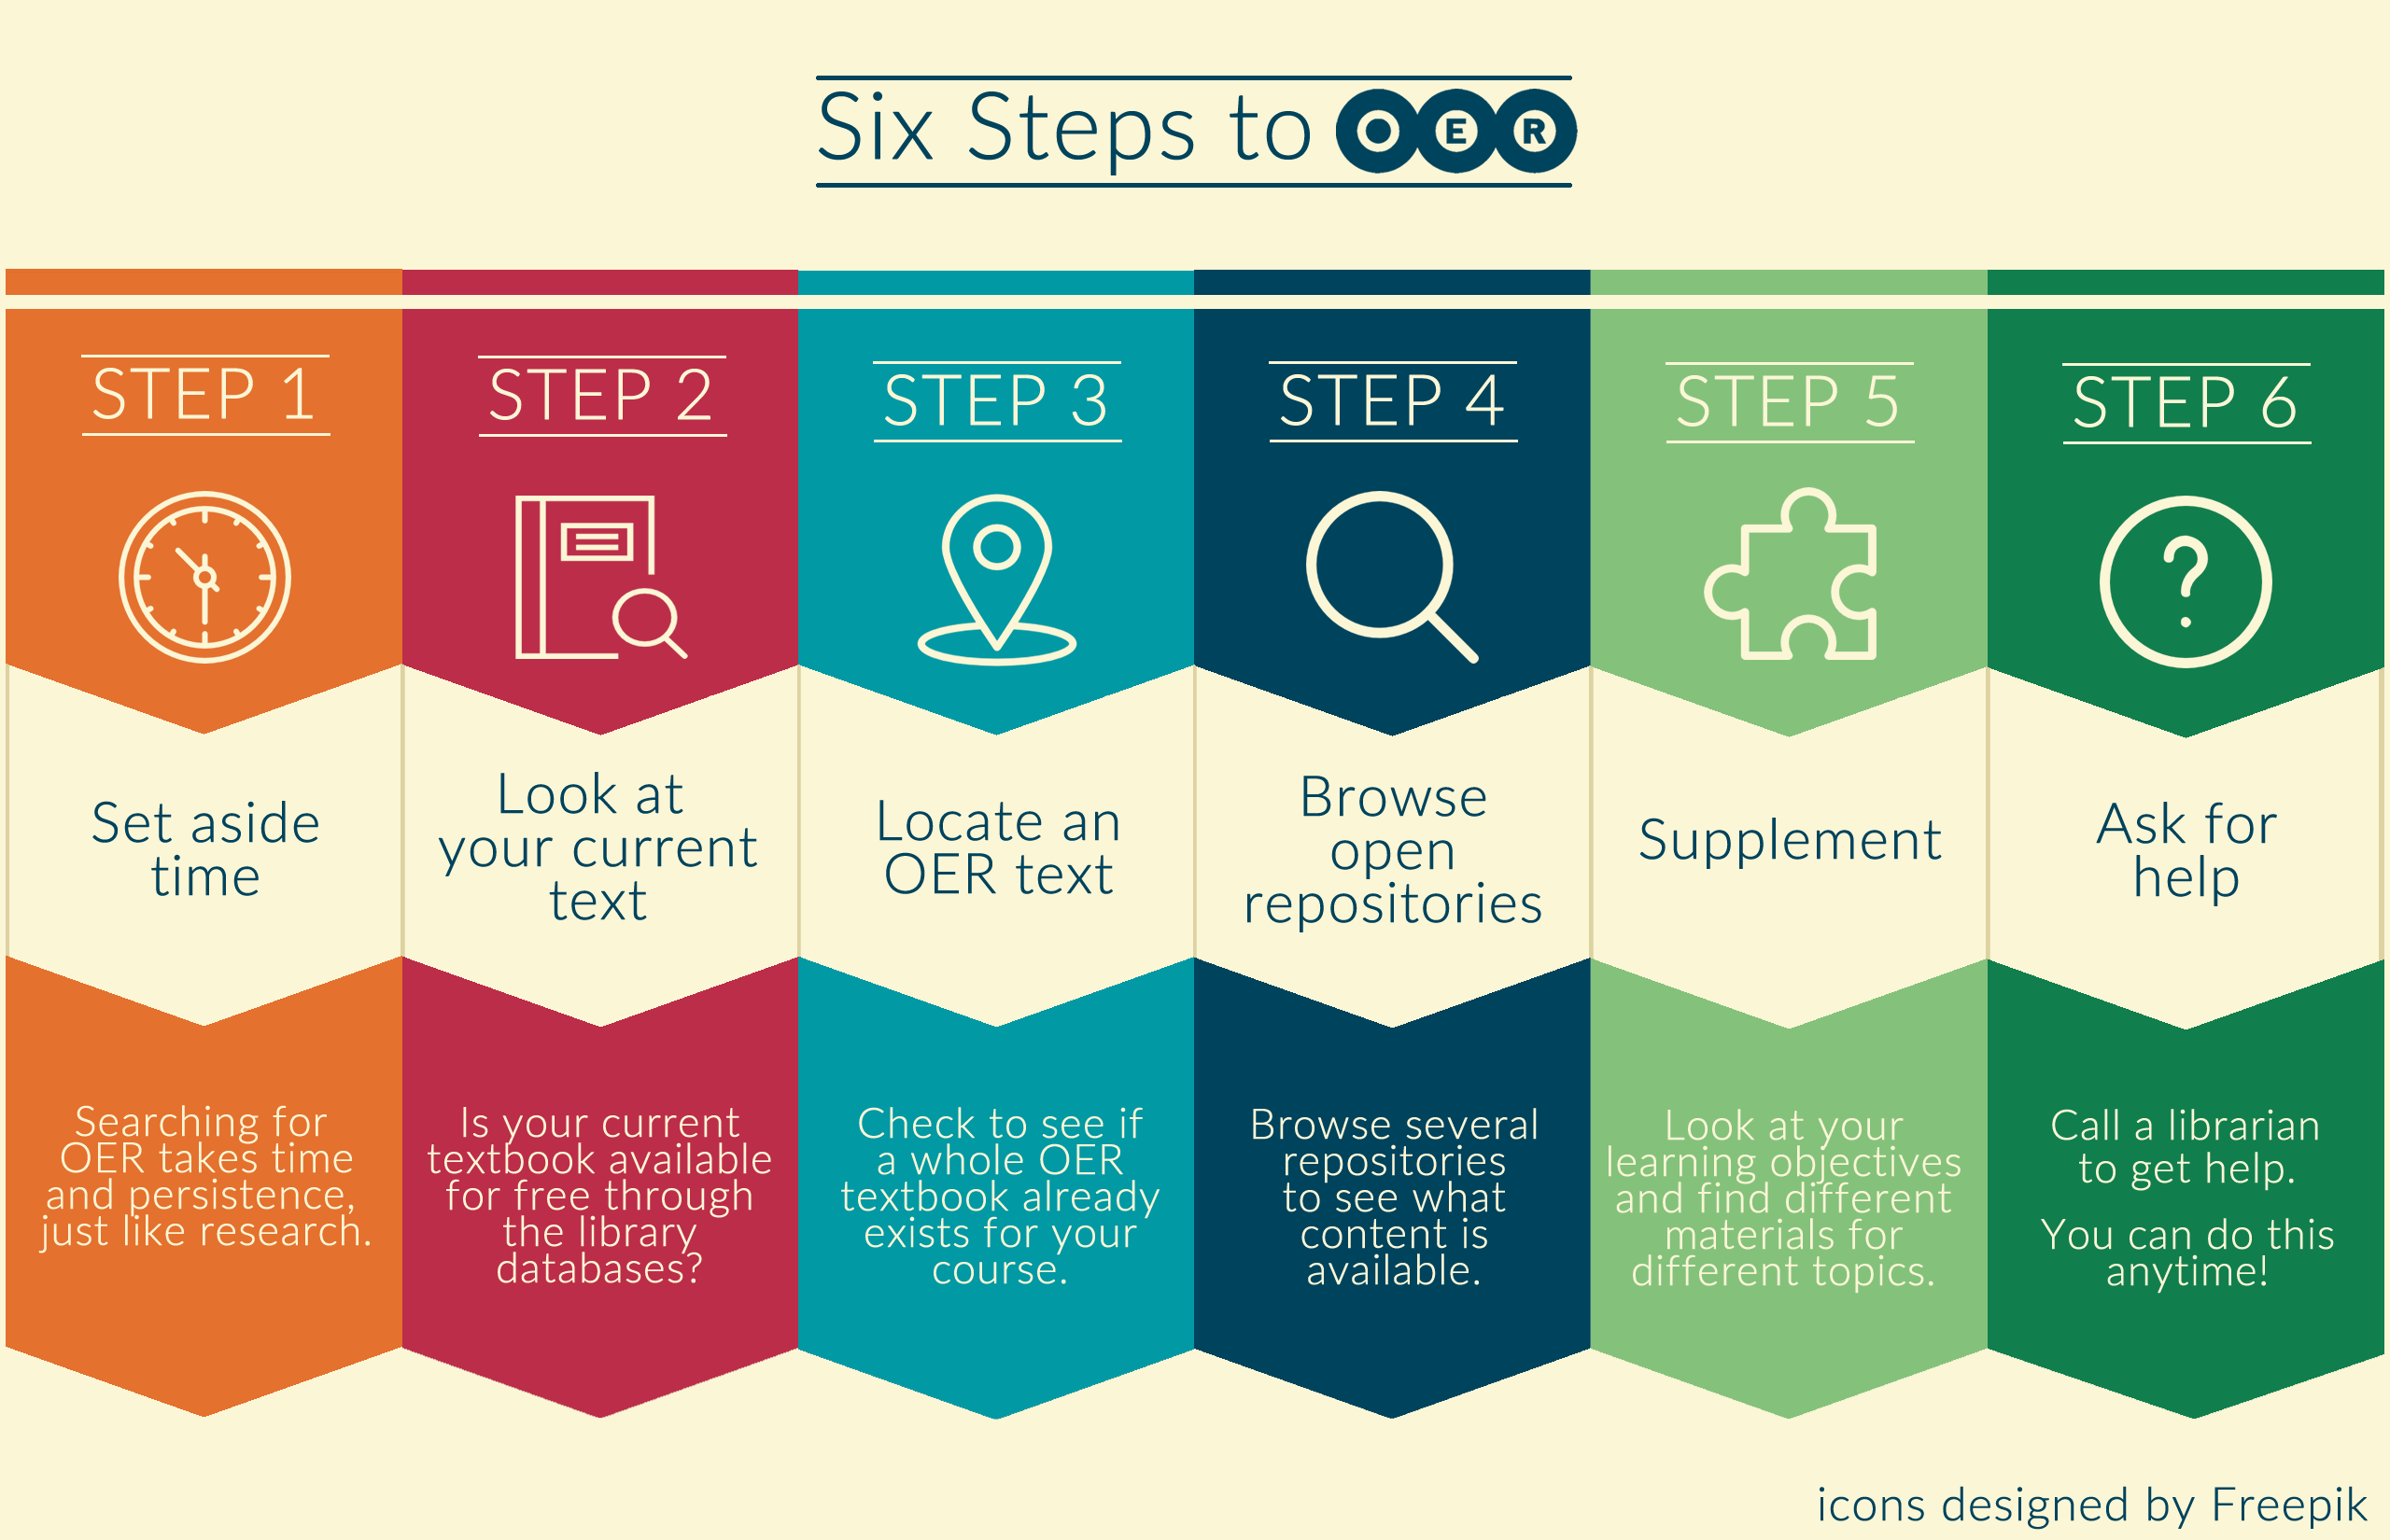 Image goes through six steps to integrate OER: Step 1 - Set aside time by searching for OER, which takes time and persistence; Step 2 - Look at your current text to see if it is available for free through library databases; Step 3 - Locate an OER text and check if an entire OER textbook already exists for a course; Step 4 - Browse many open repositories to see what content is available; Step 5 - Supplement by looking at the learning objectives for a class and find different materials for different topics; Step 6- Ask for assistance from a librarian to get help finding OER for your class.